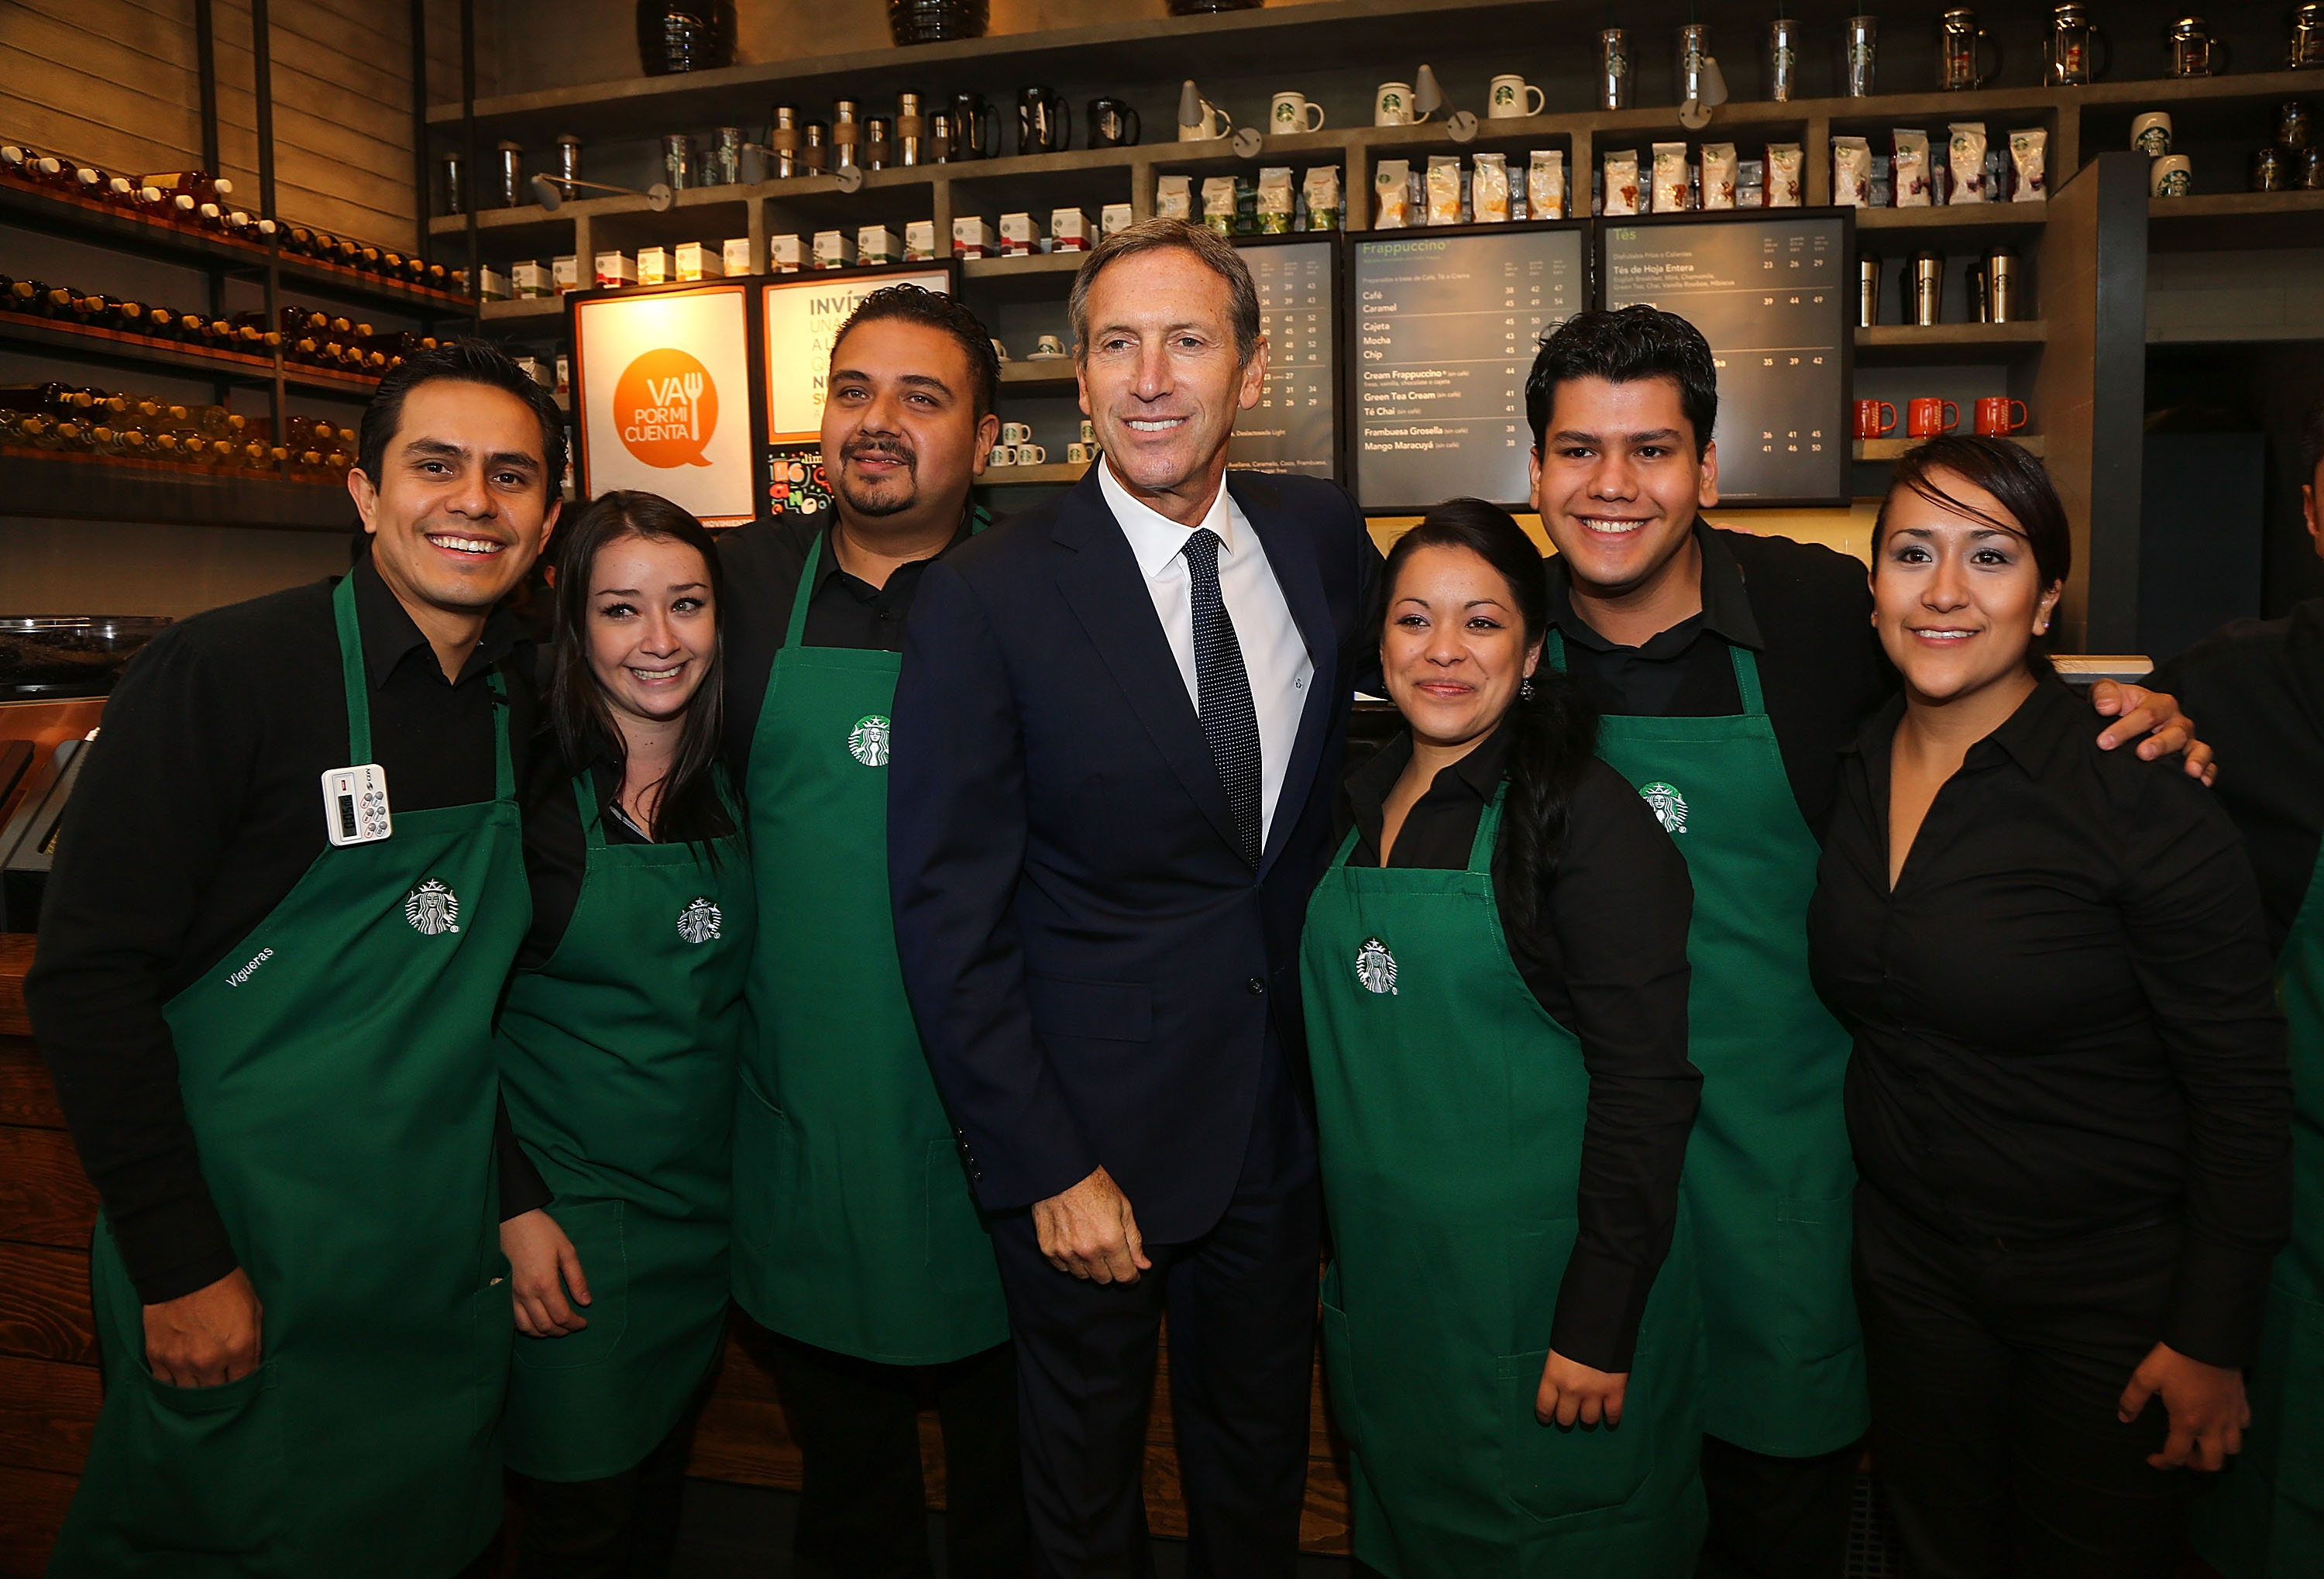 Starbucks Hires Refugees